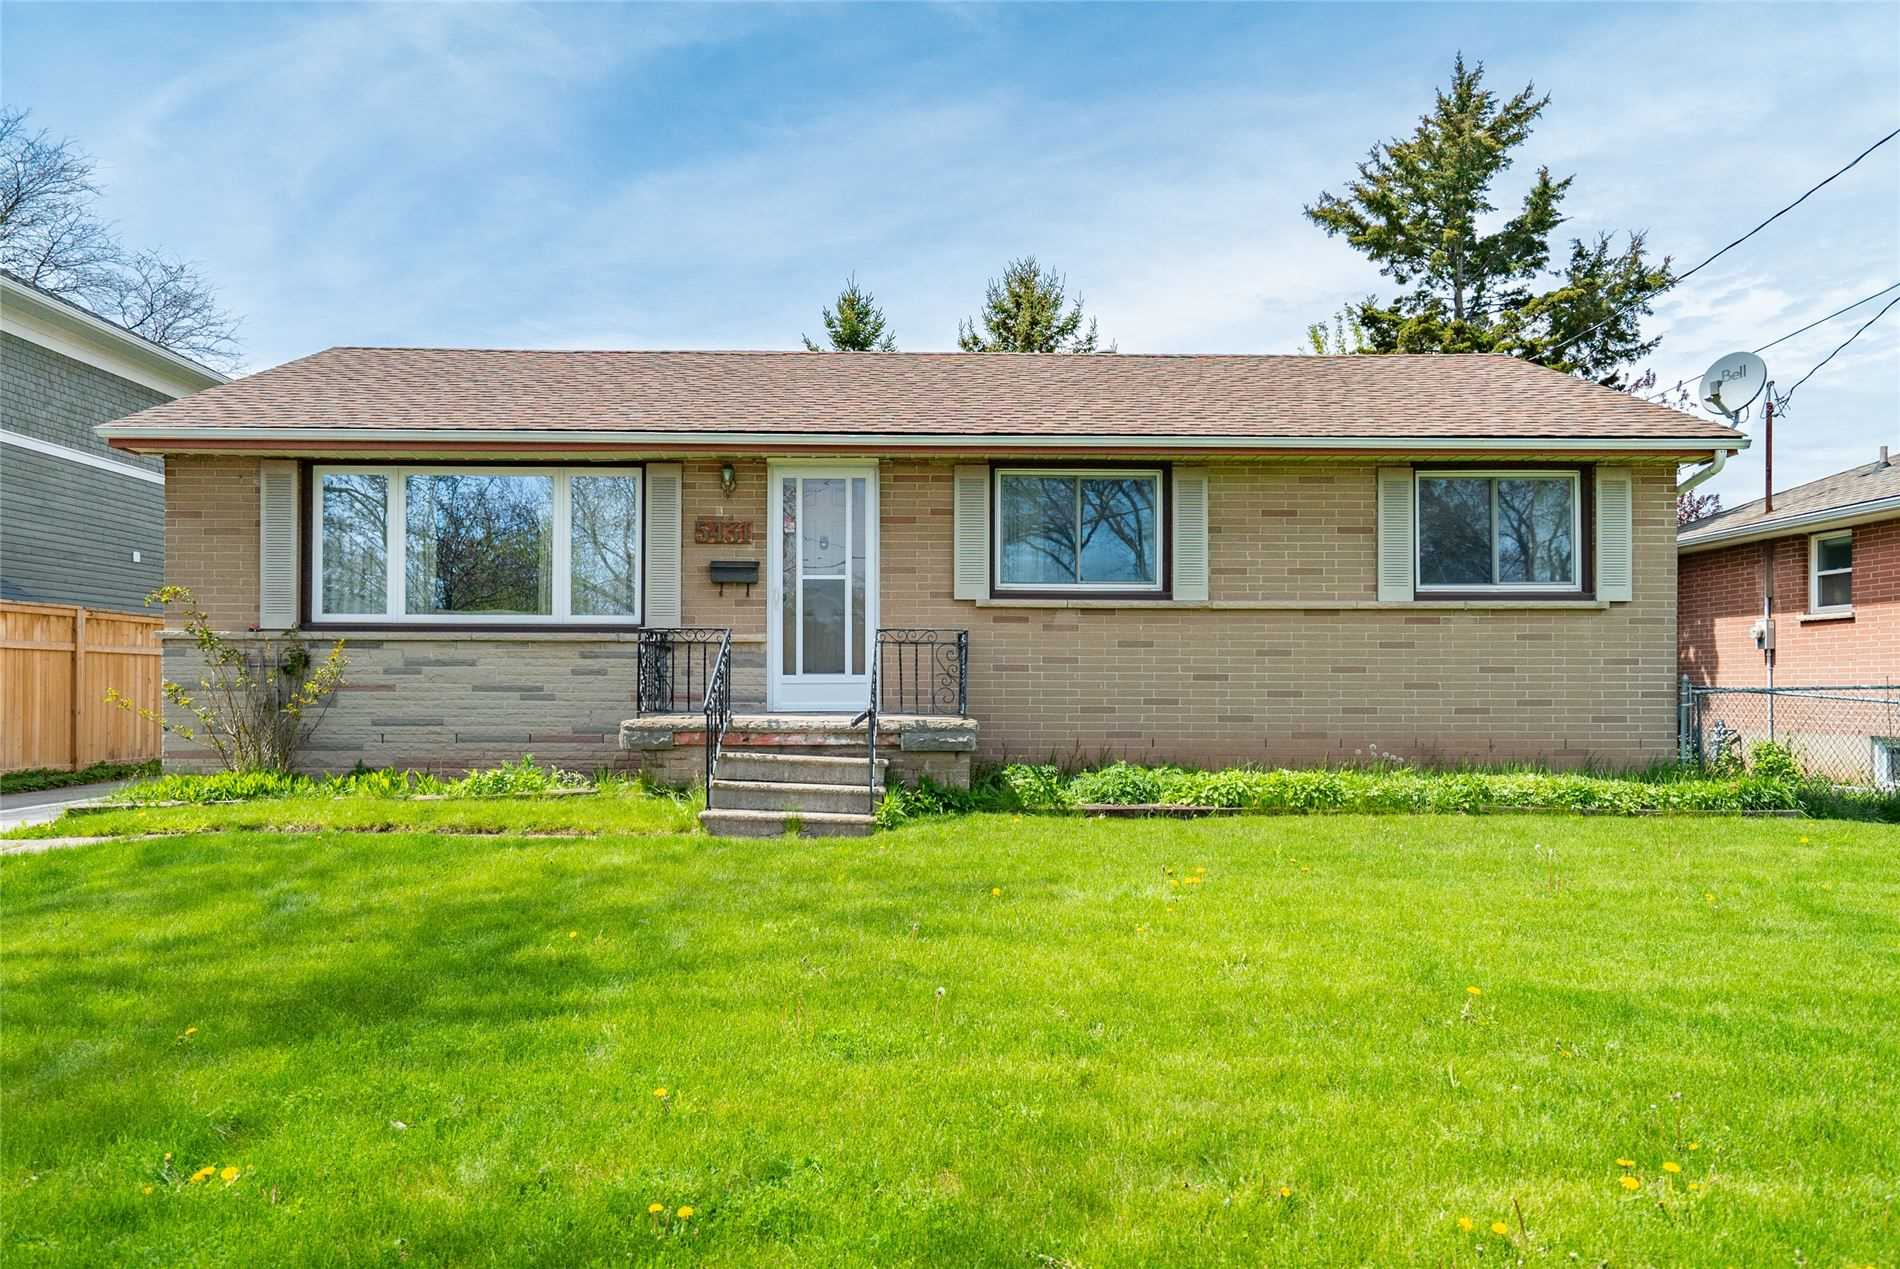 5431 Croydon Rd, Burlington, L7L3J2, 3 Bedrooms Bedrooms, ,1 BathroomBathrooms,Detached,For Sale,Croydon,W4766814